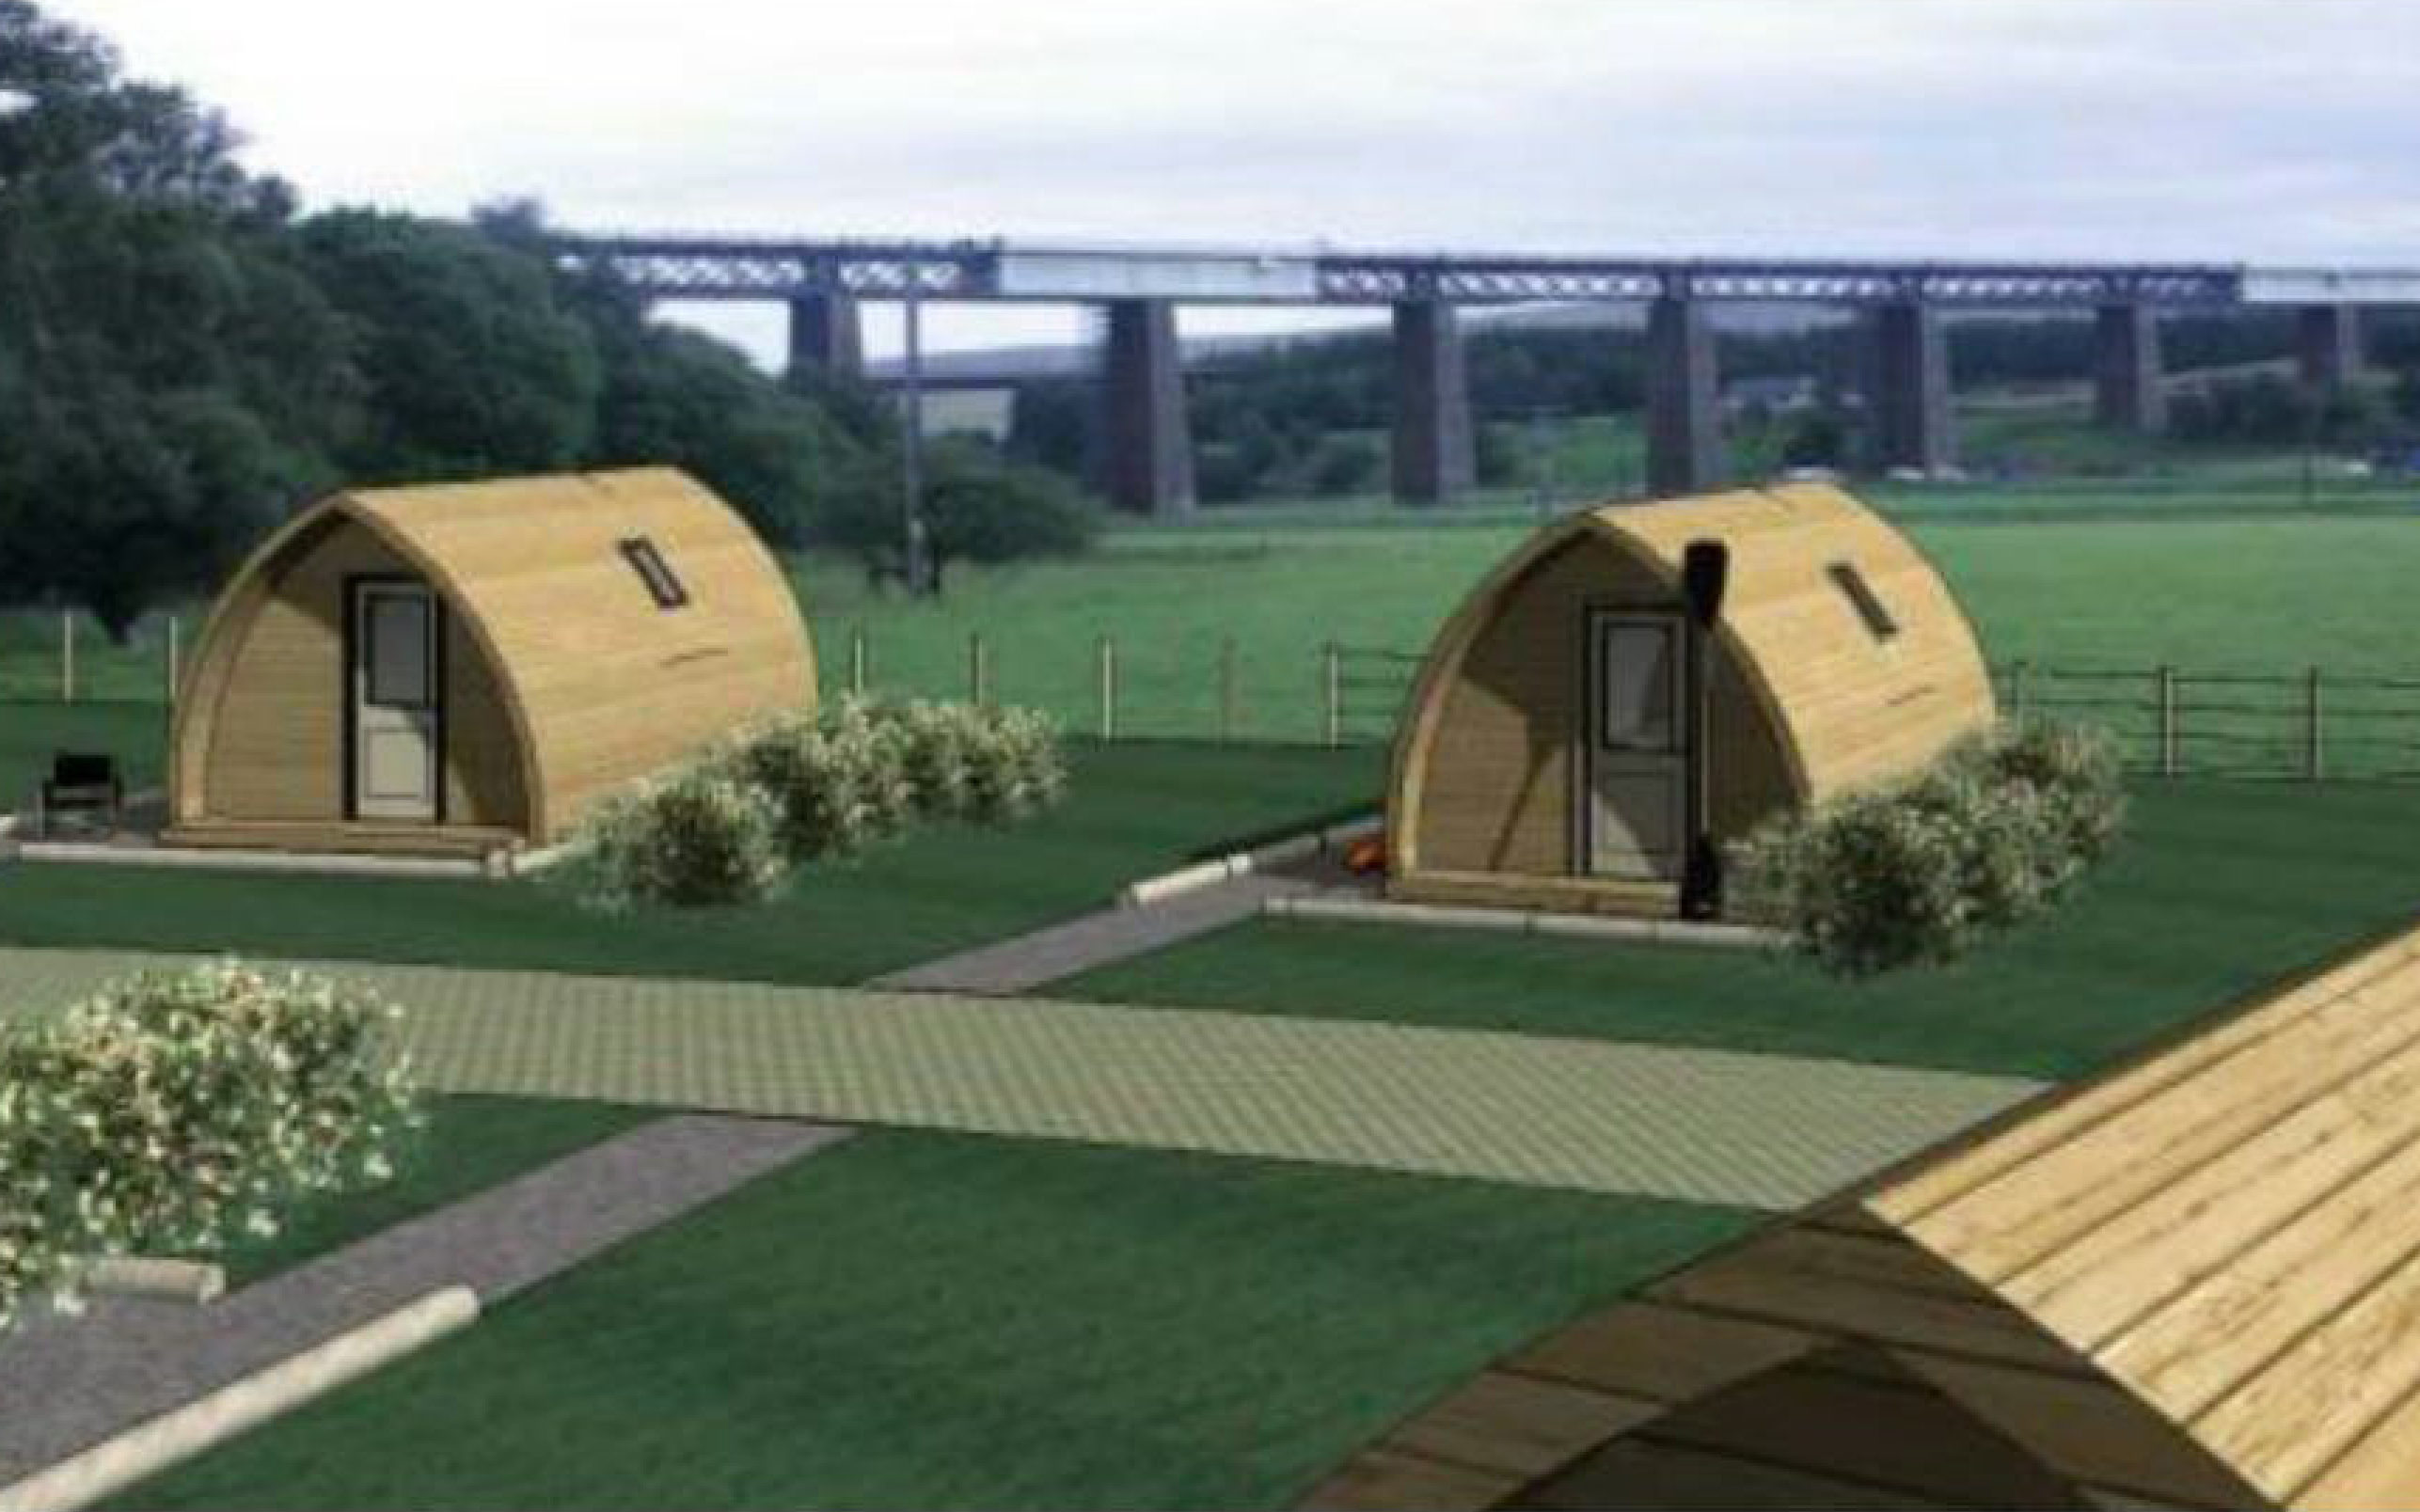 A design image of the pods.